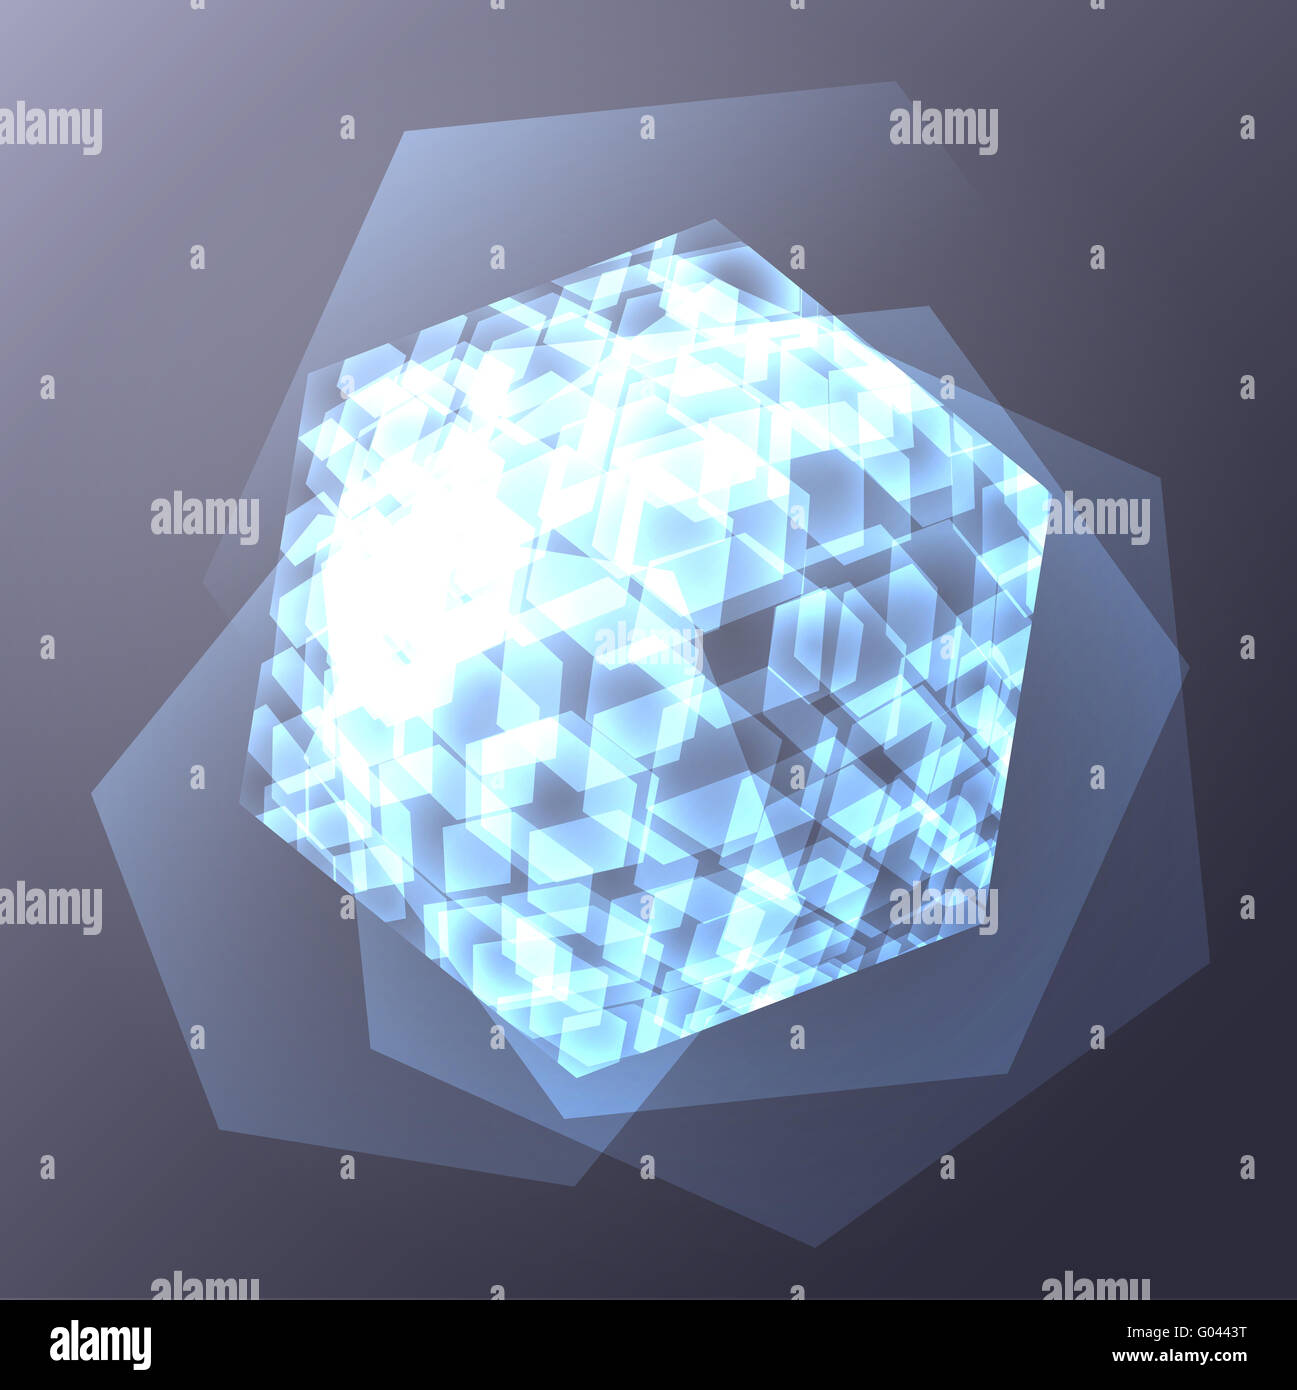 Hexahedron abstract digital glossy edgy artificial - Stock Image